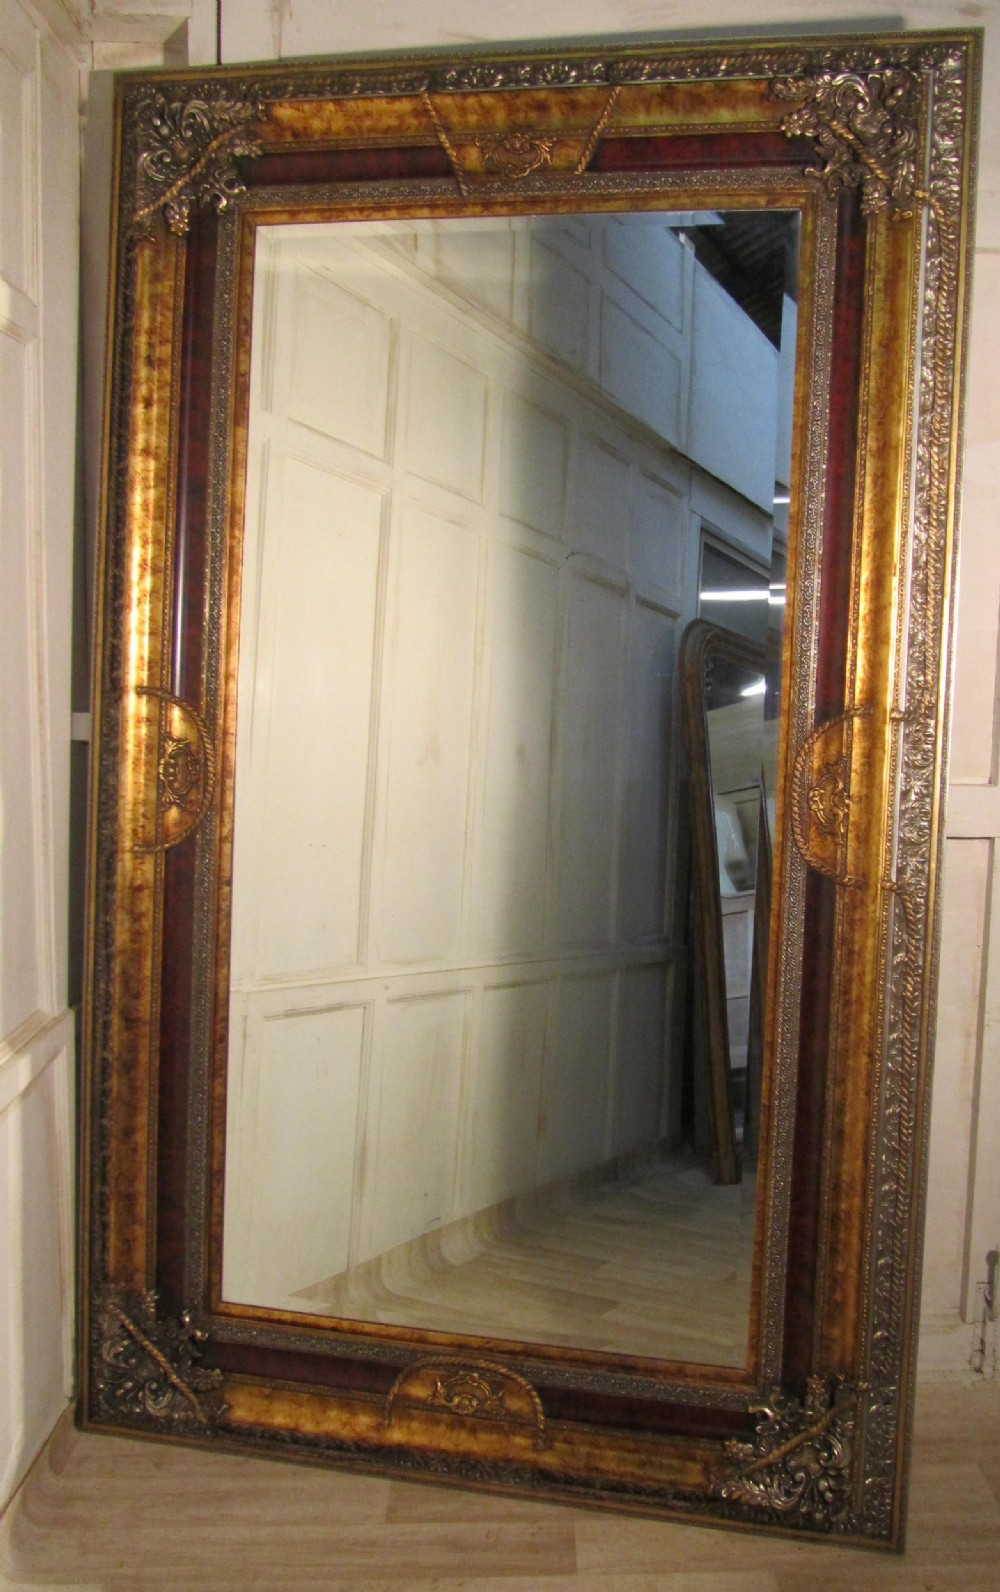 A Very Large Decorative Wall Mirror 240540 Sellingantiques Co Uk